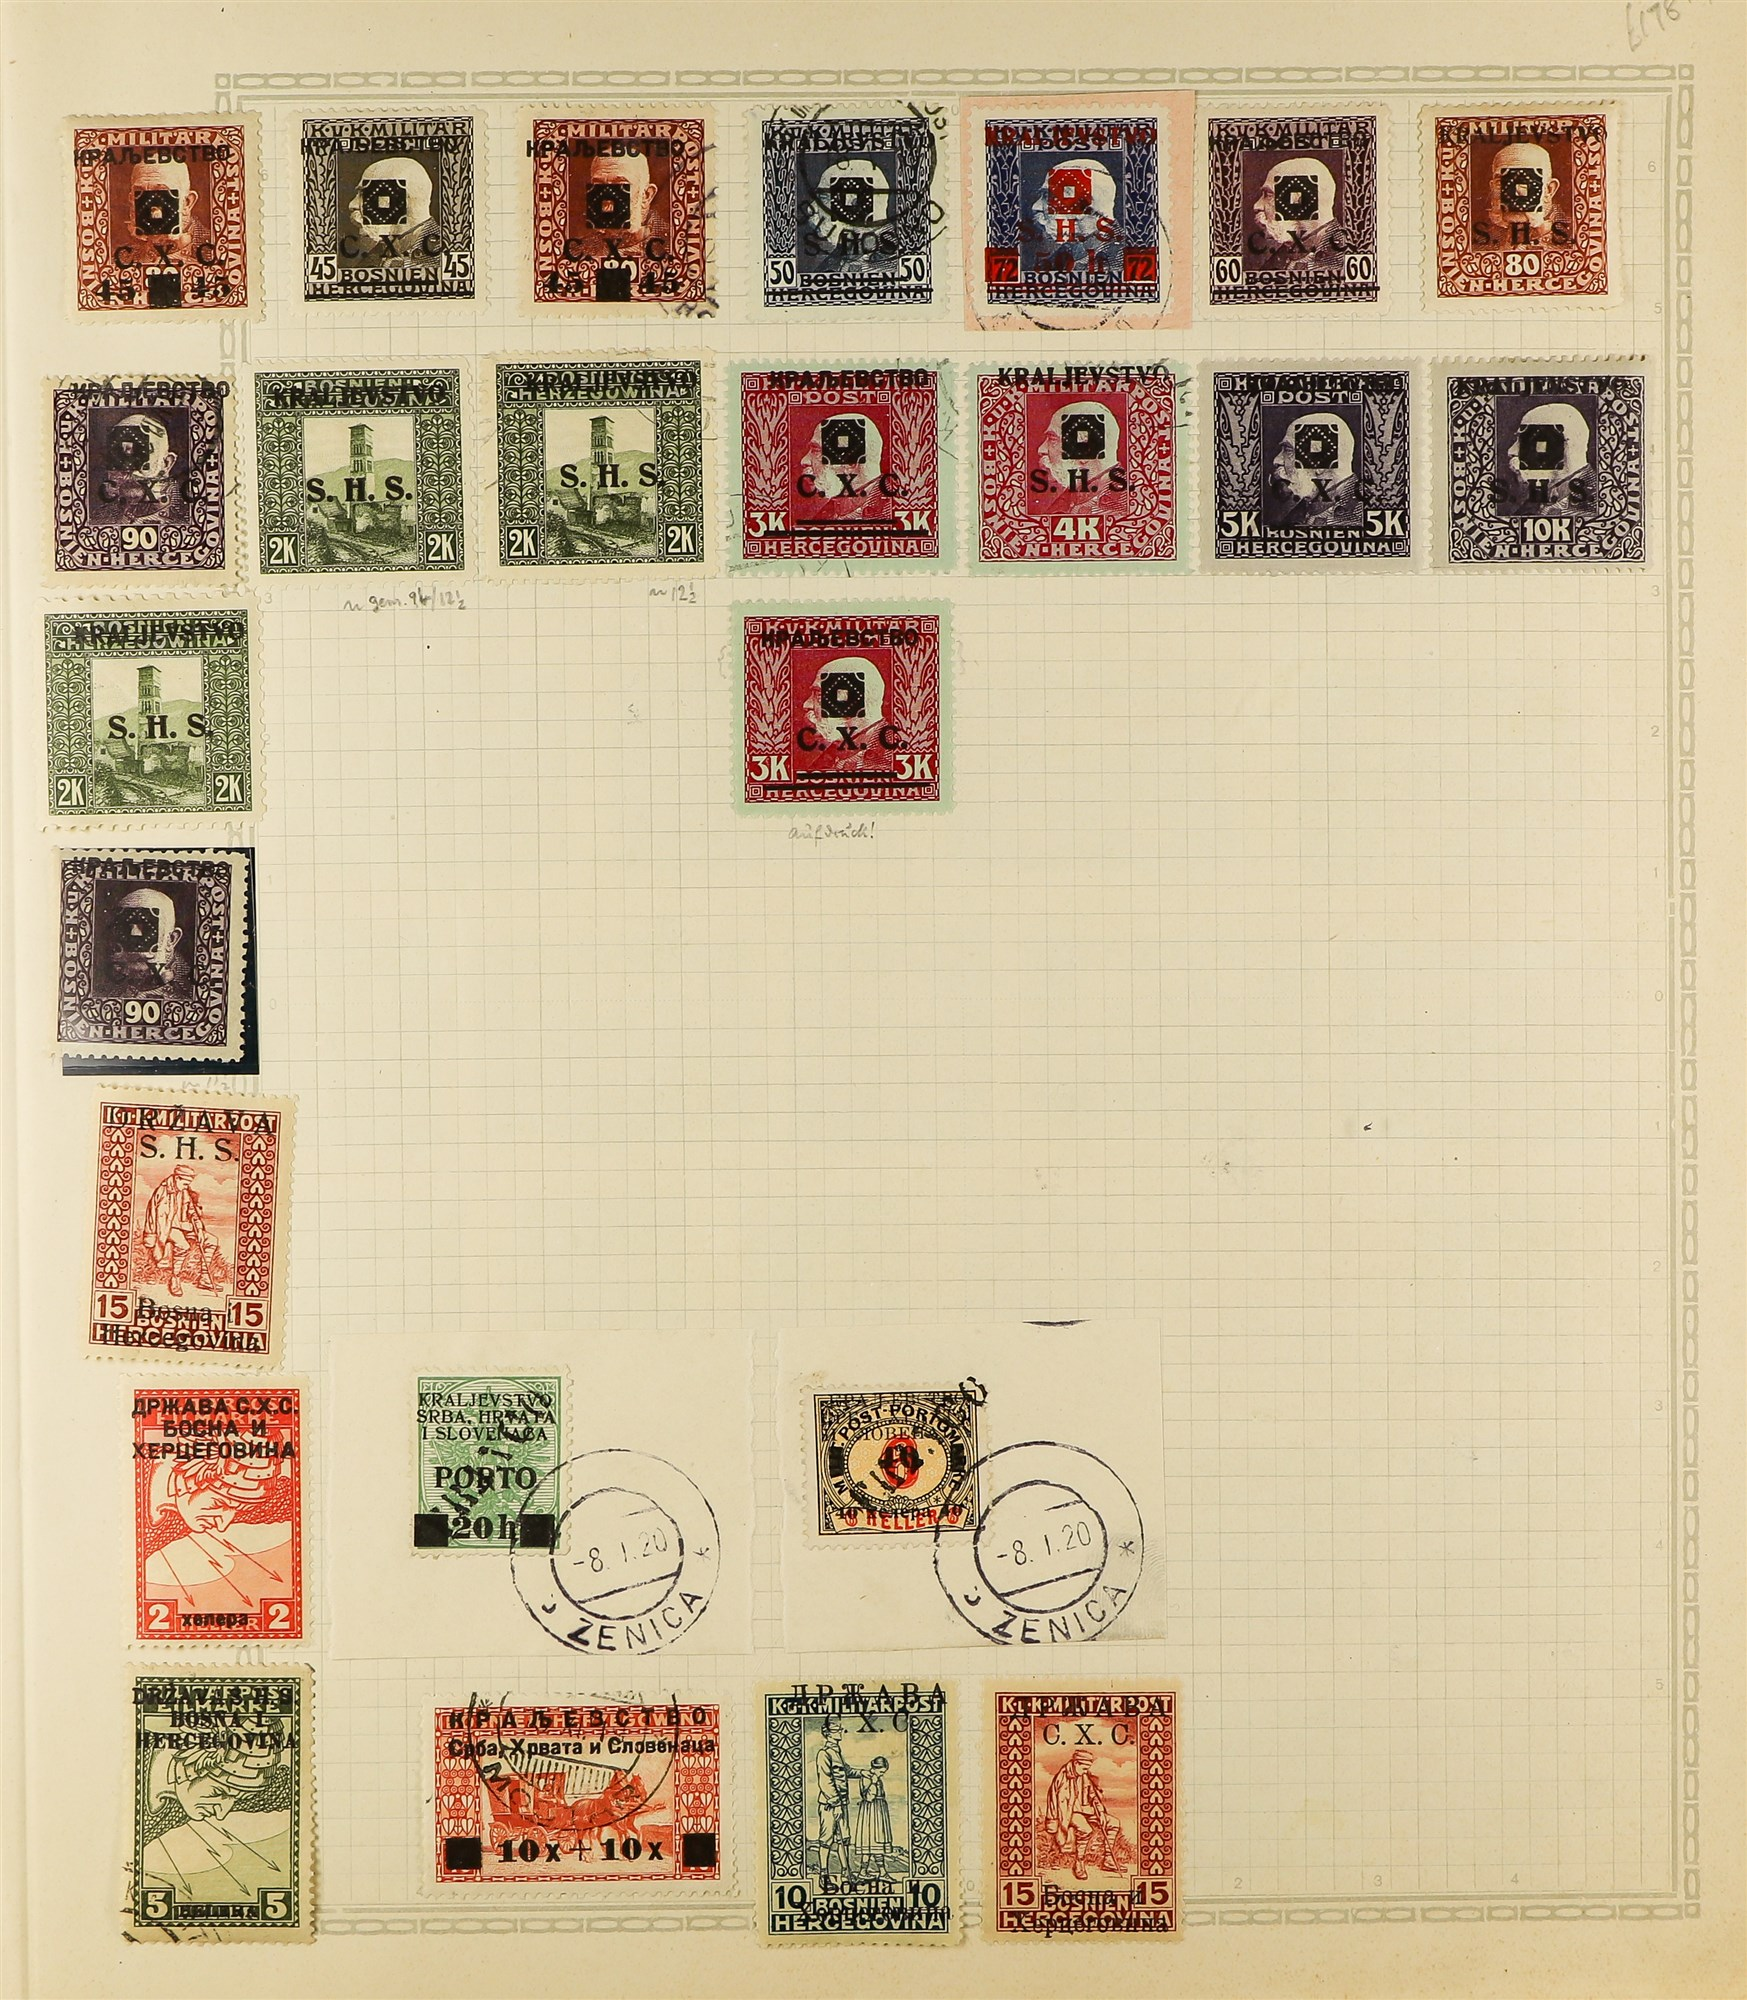 YUGOSLAVIA 1919-80 COLLECTION of mint and used issues in an album, incl. extensive Chainbreakers, - Image 5 of 17